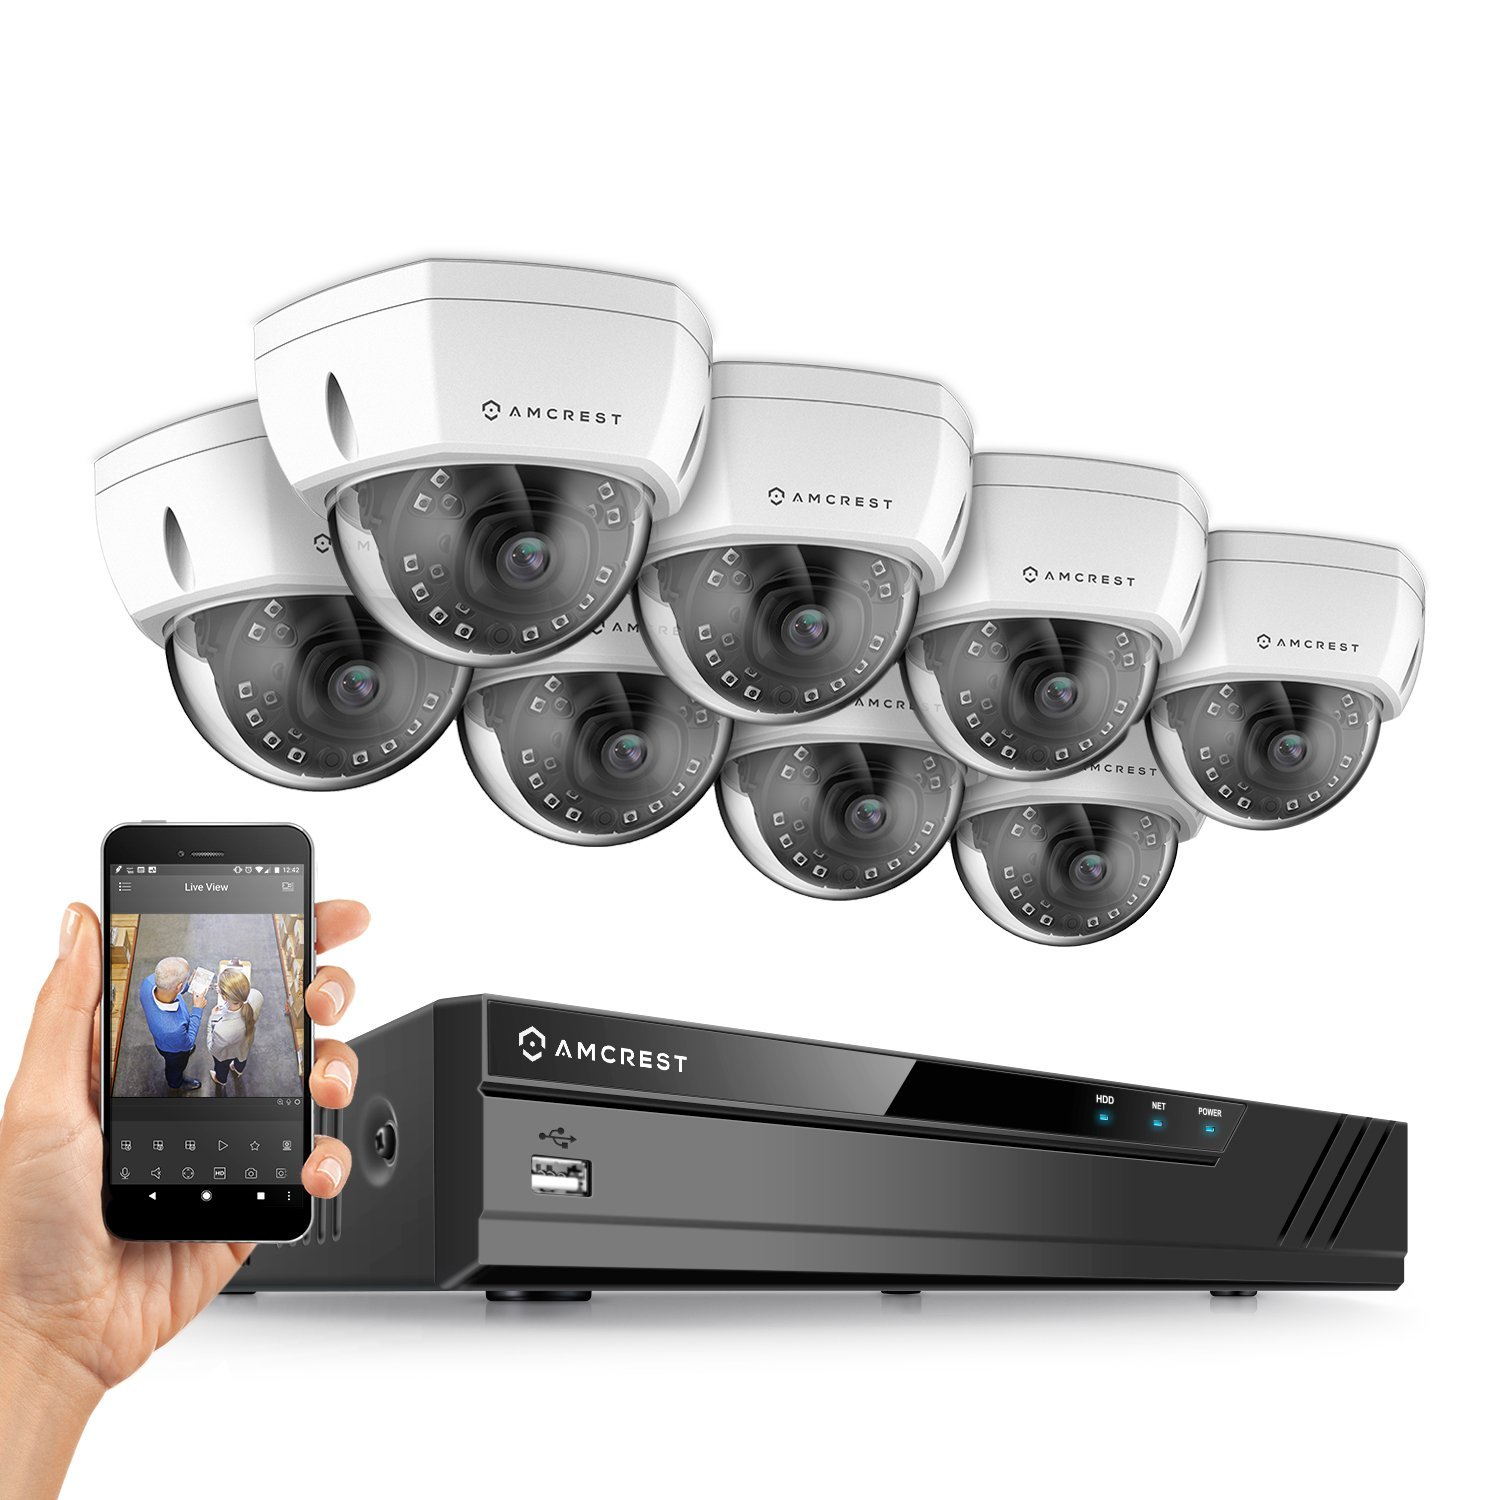 Amcrest 16CH Plug & Play H.265 4K NVR 2MP 1080P Security Camera System, (8) x 2-Megapixel 3.6mm Wide Angle Lens Weatherproof Metal Dome PoE IP Cameras, 98 Feet Night Vision (White)